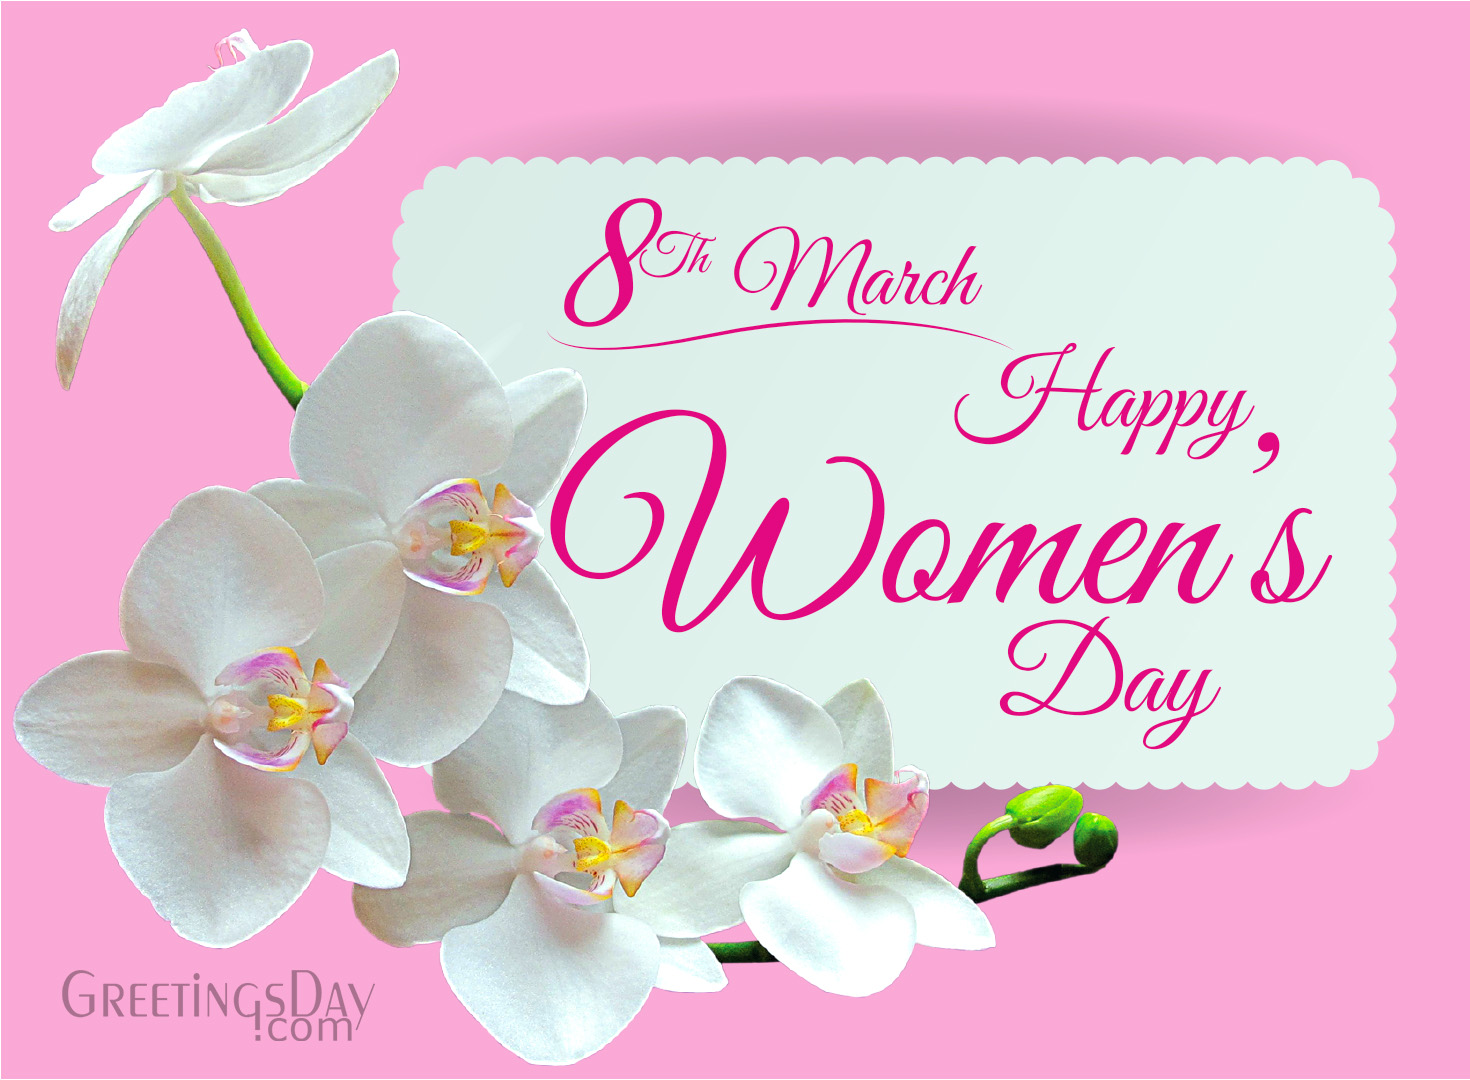 Best Women's Day Cards